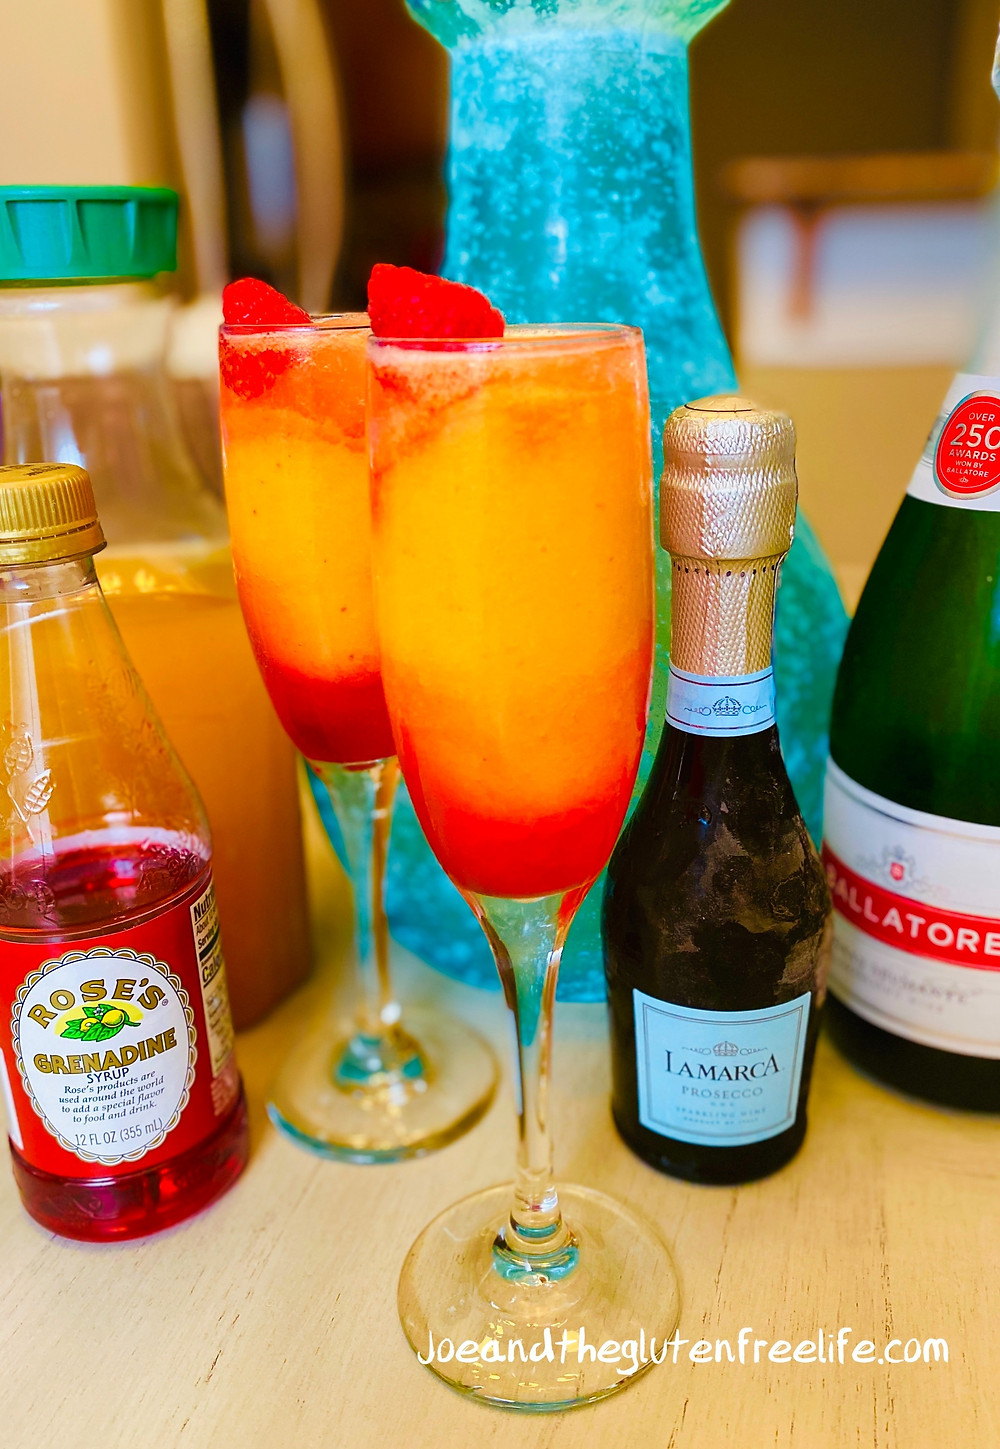 Refreshing and delicious: A new twist on the traditional peach Bellini.